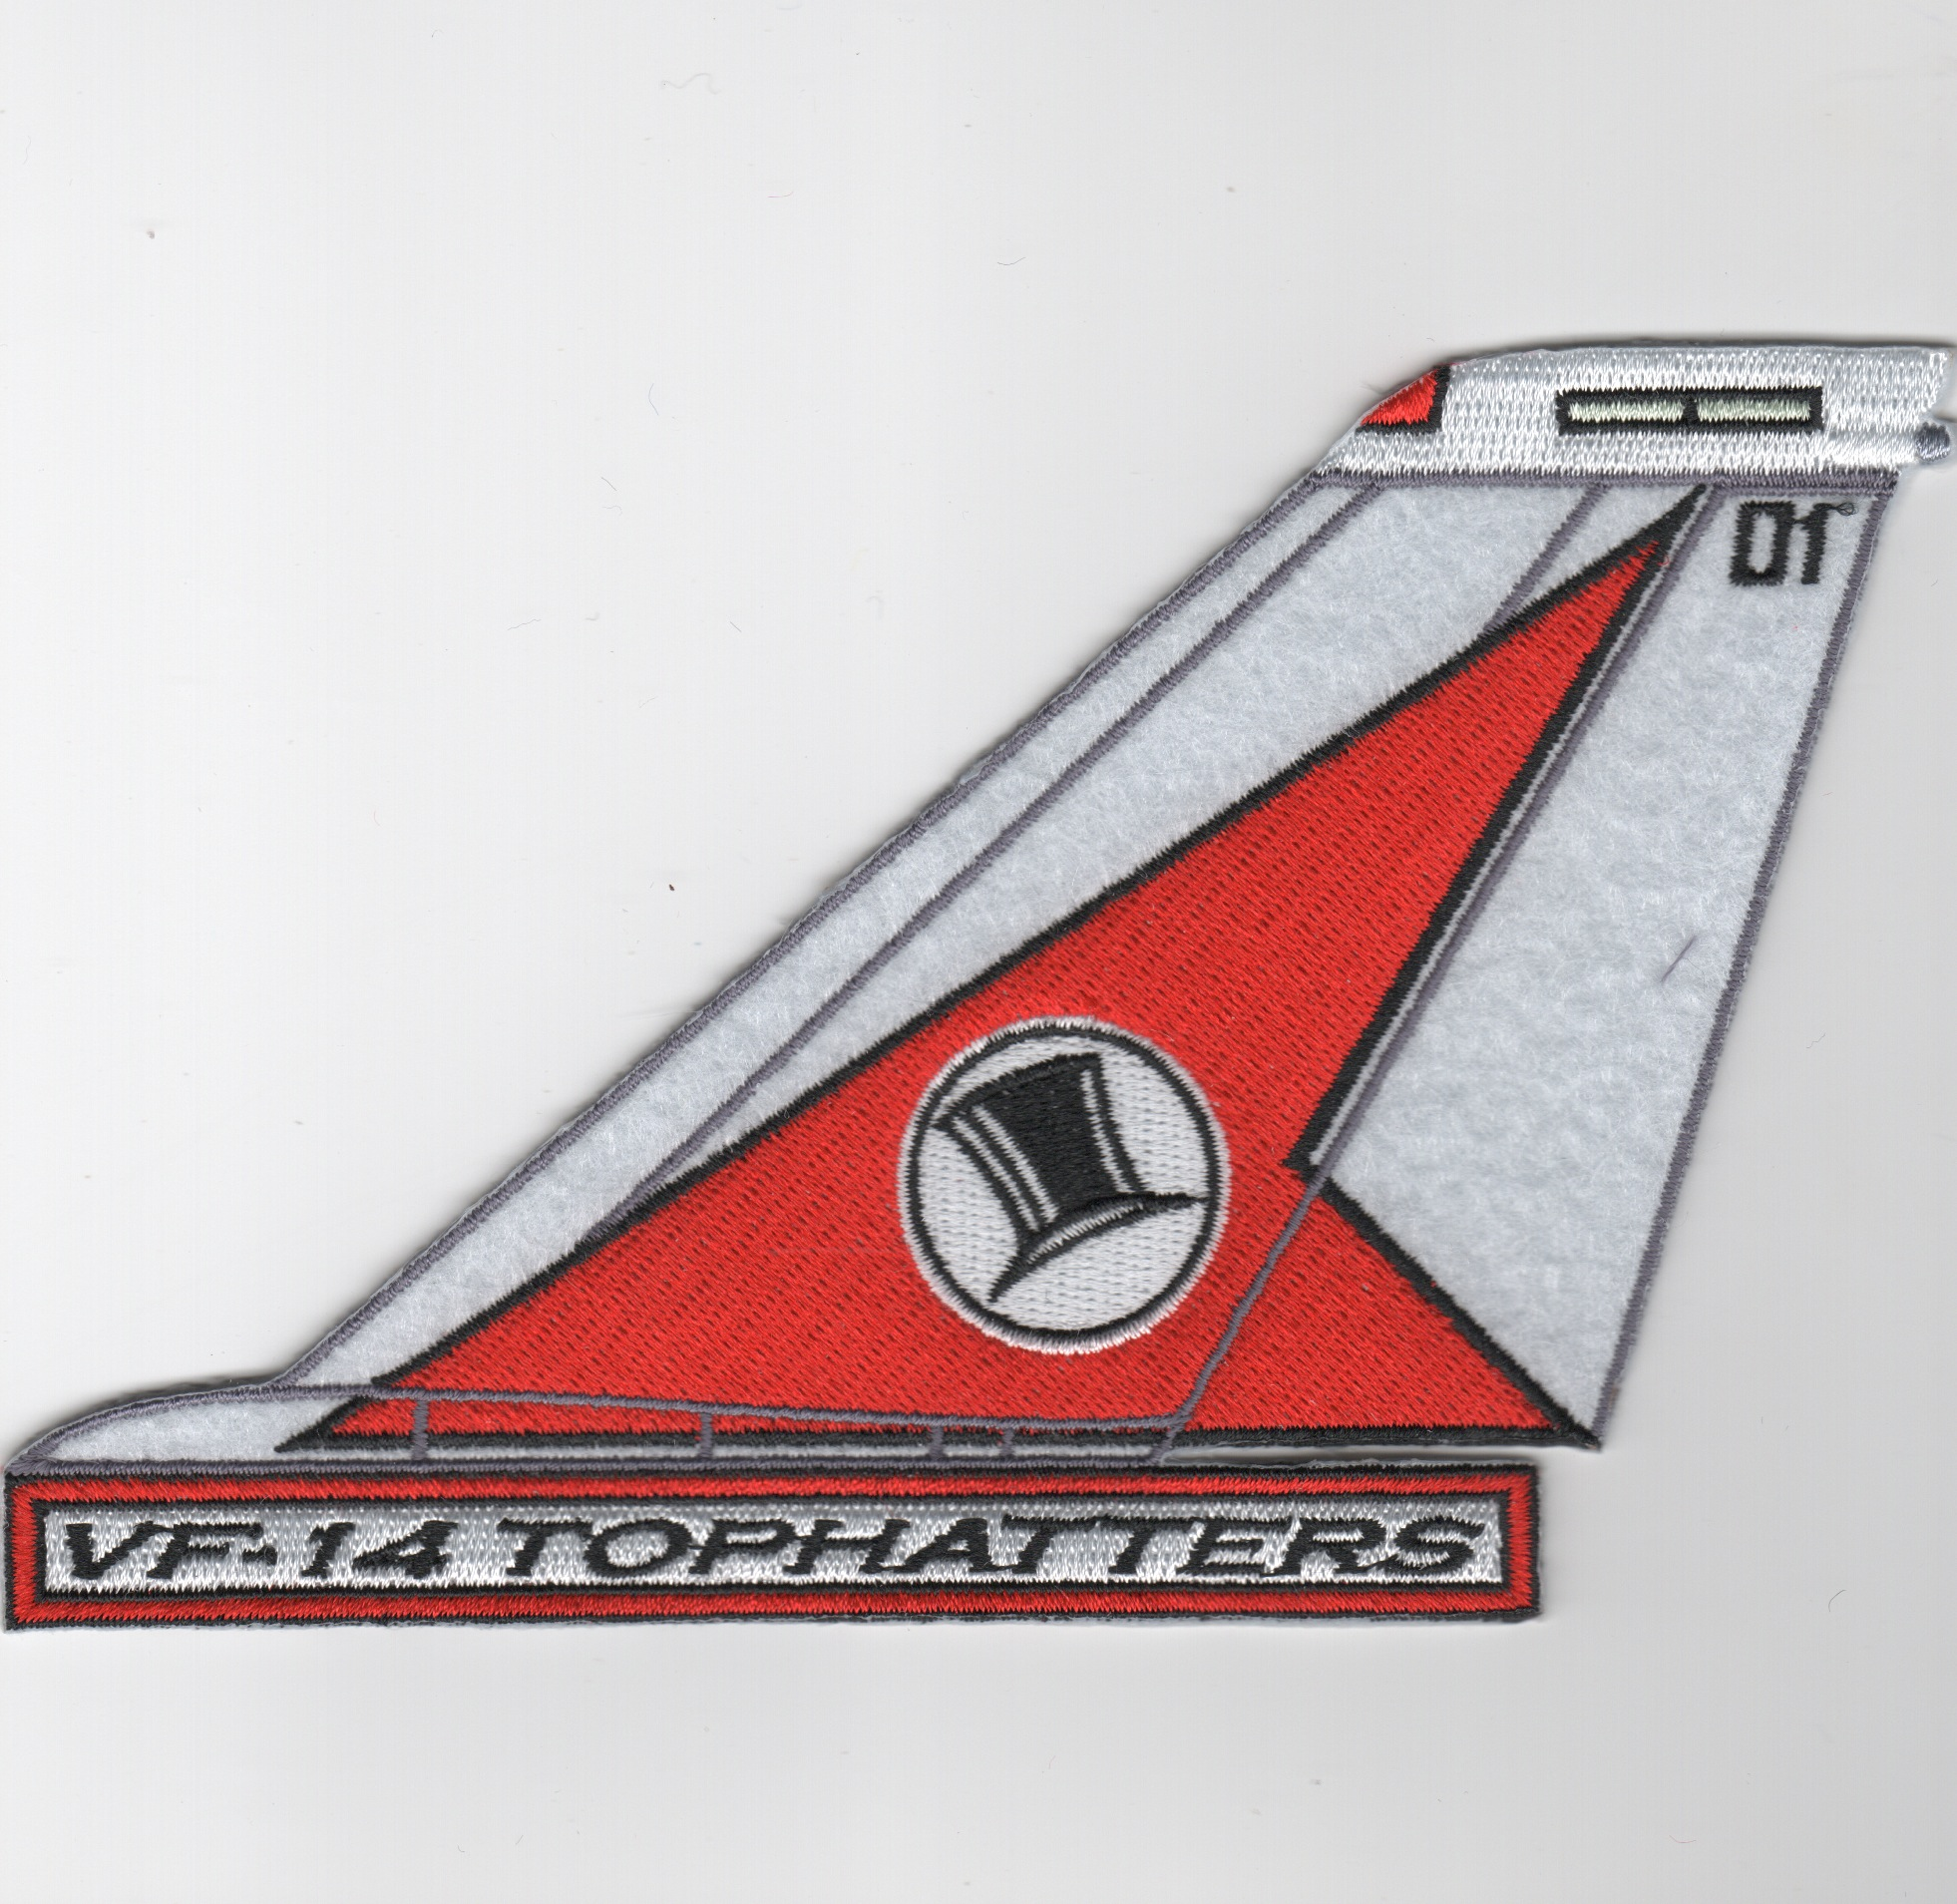 VF-14 F-14 Tomcat Tail Fin (Red/White/Text)